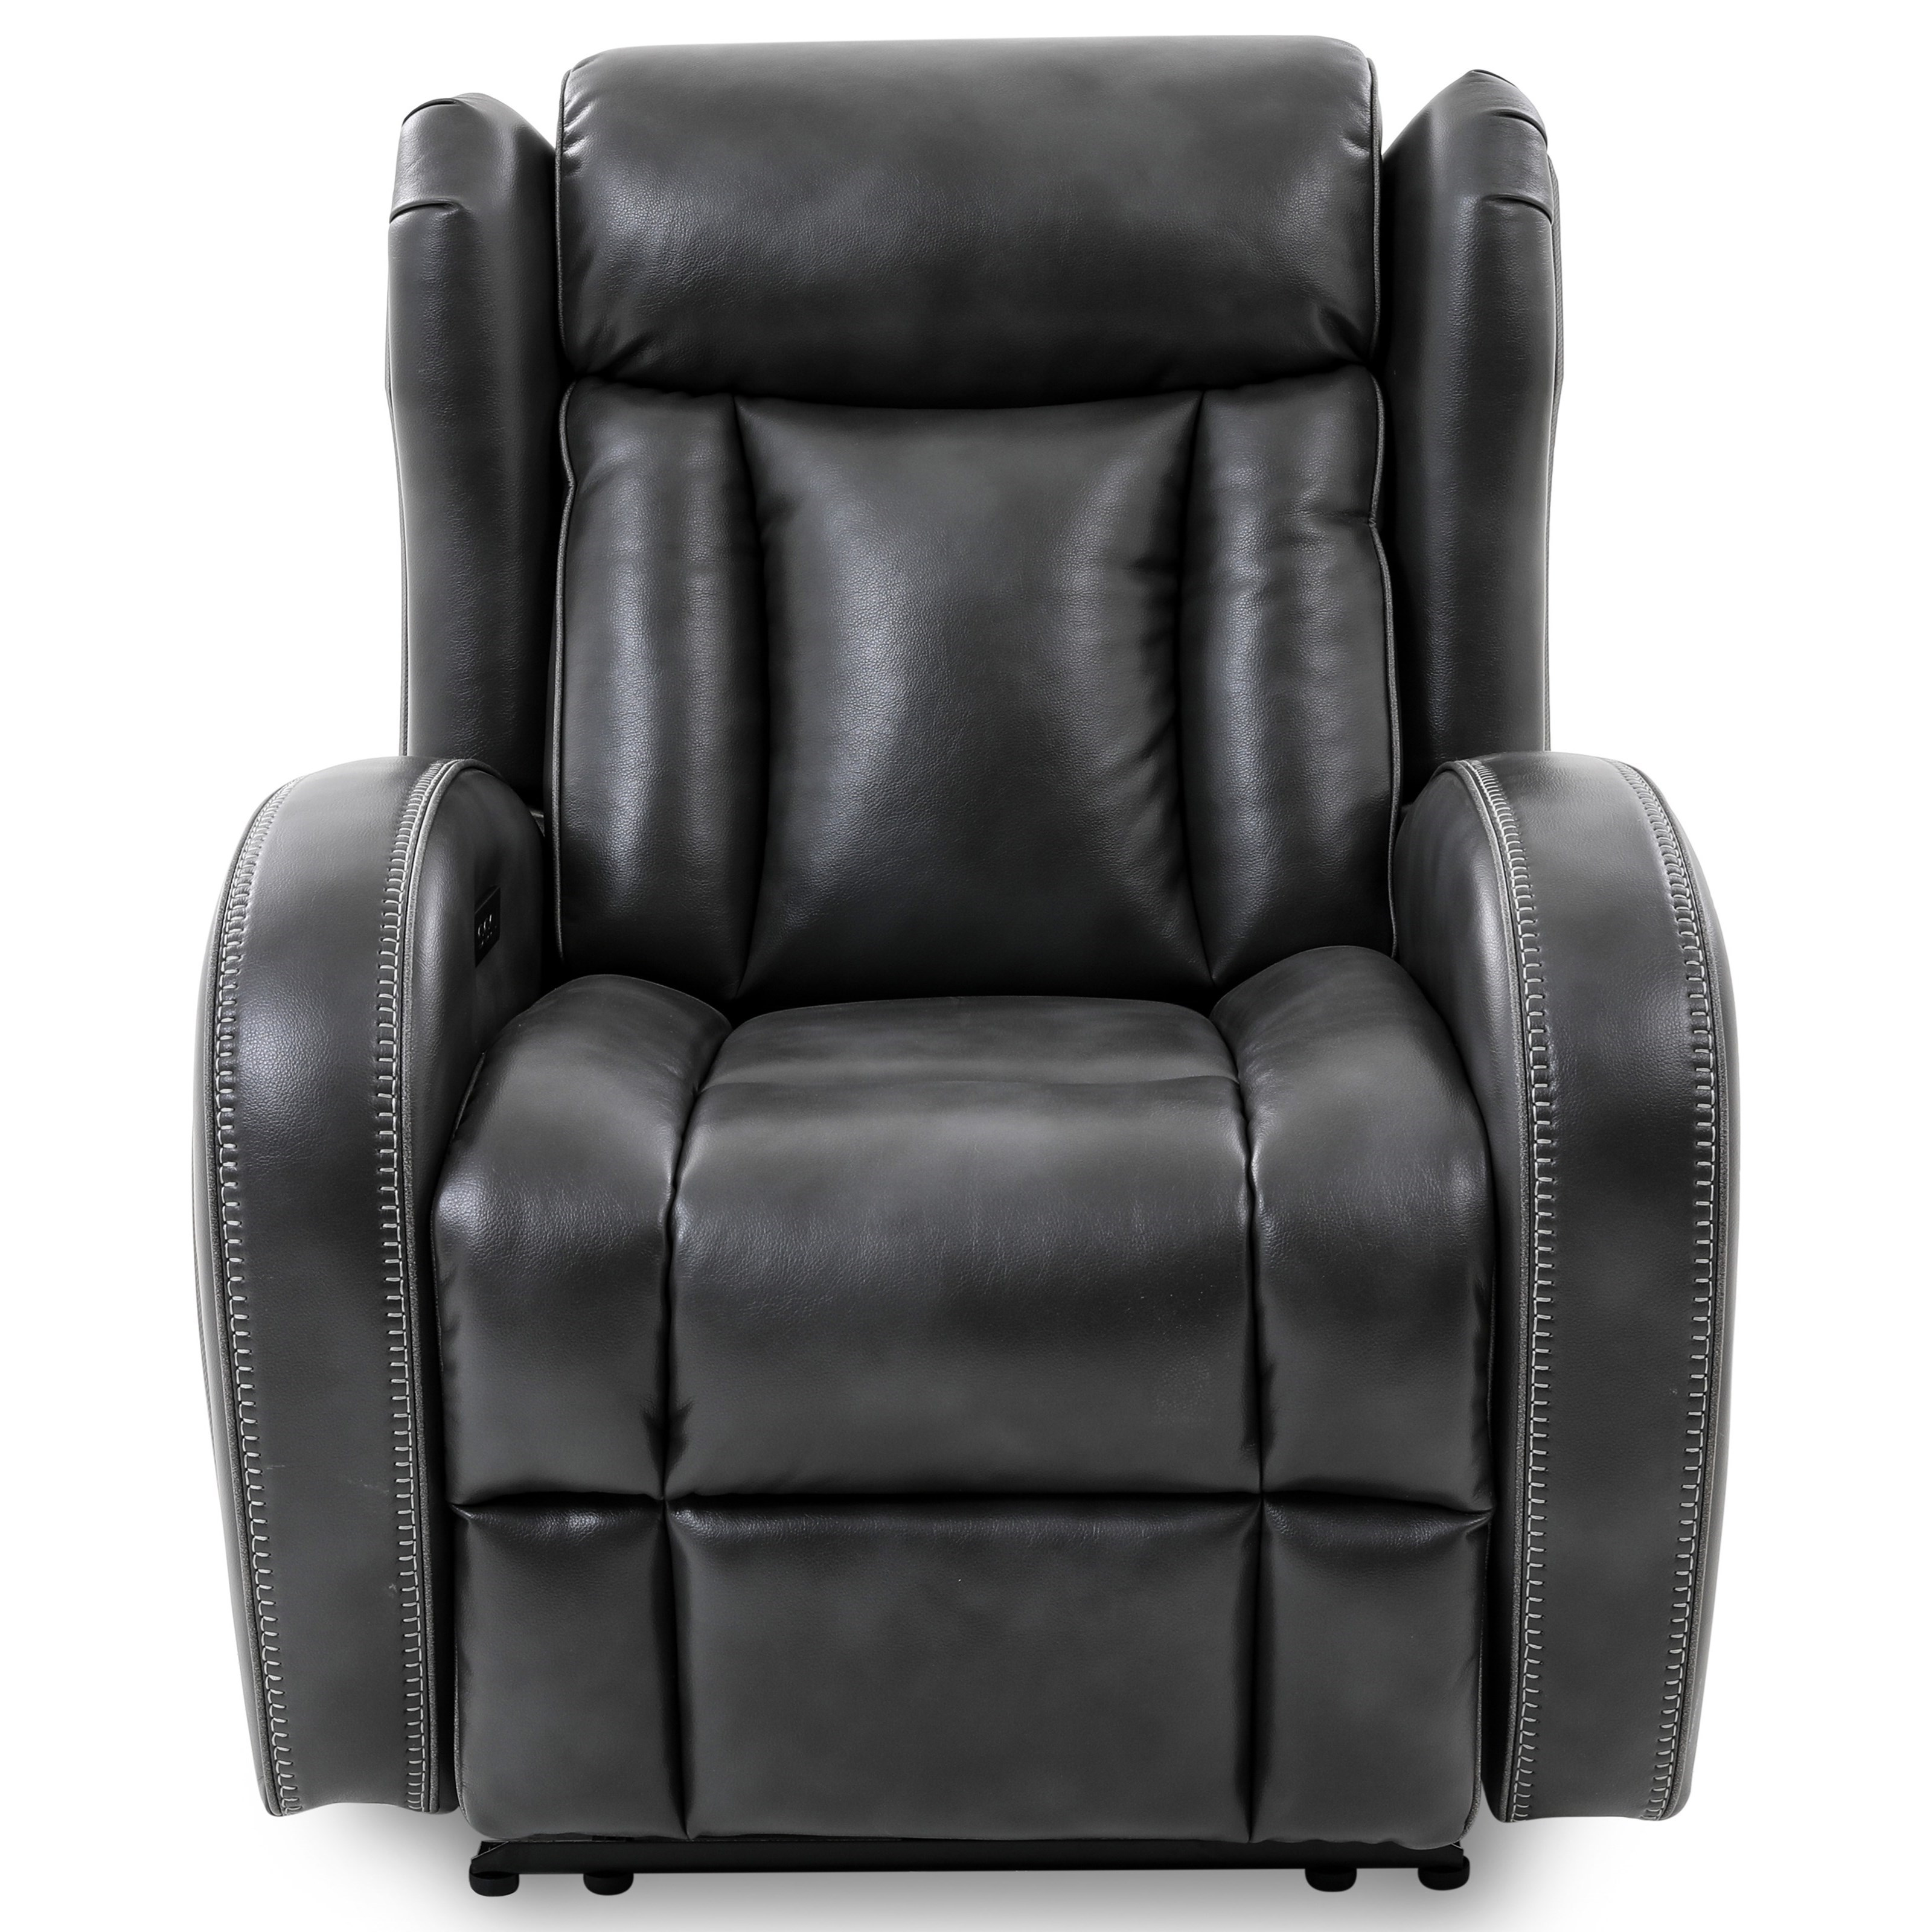 70083 Power Recliner by Cheers at Lagniappe Home Store